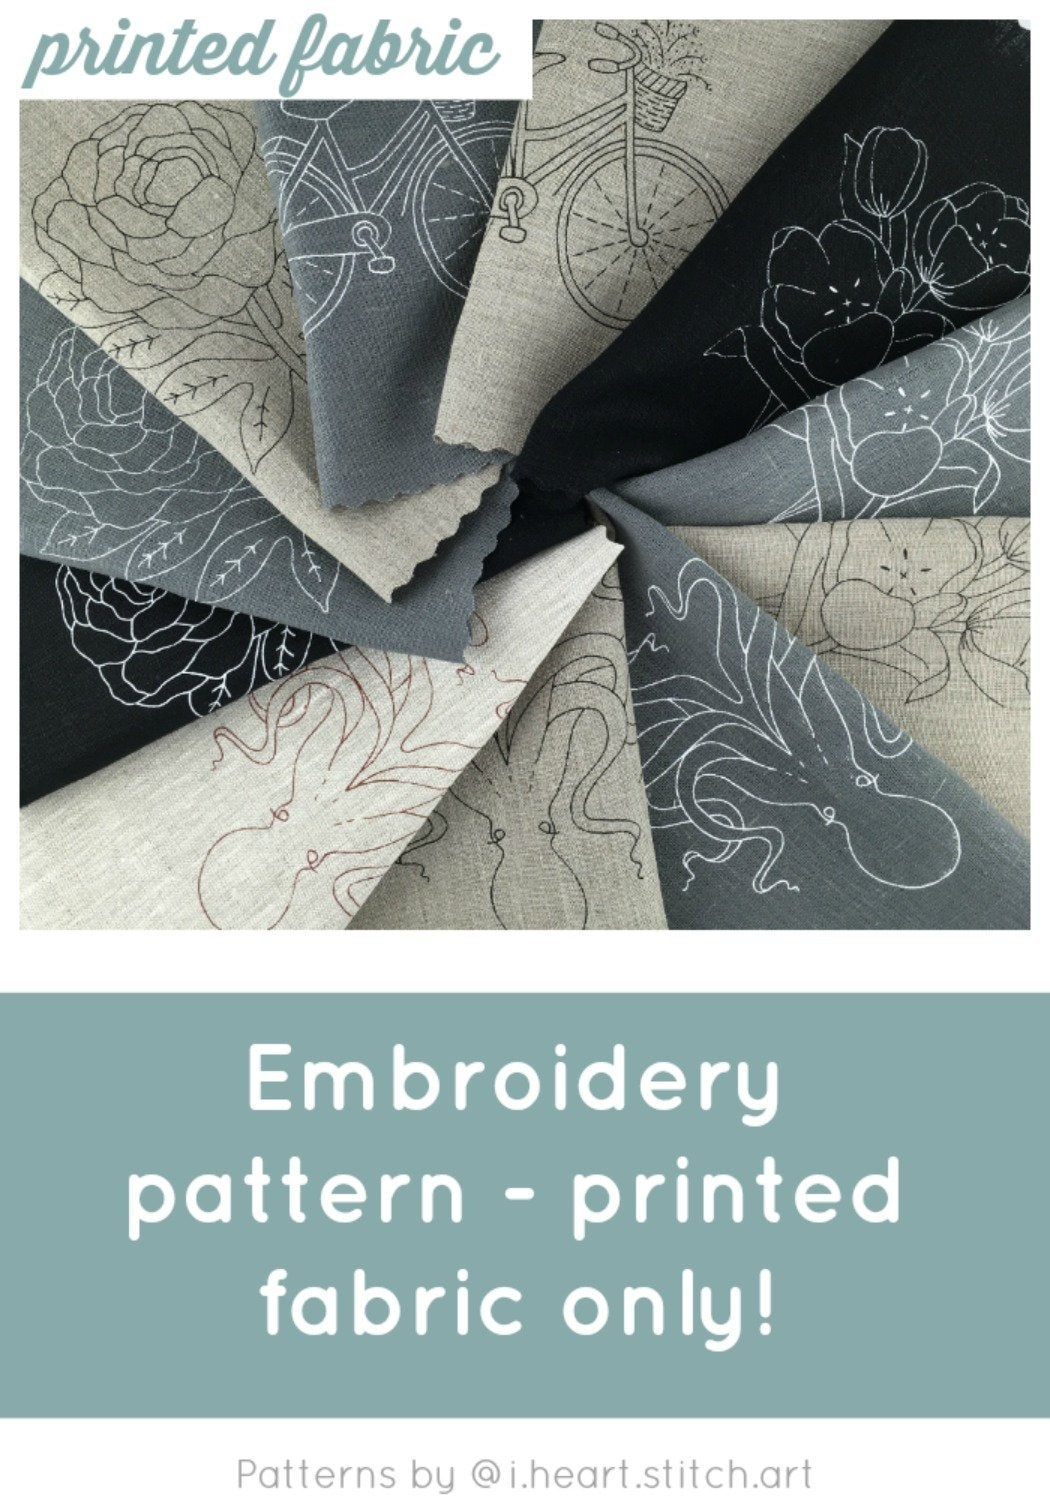 Stamped Embroidery Patterns Pattern For Hand Embroidery Fabric Only Embroidery Pattern Cross